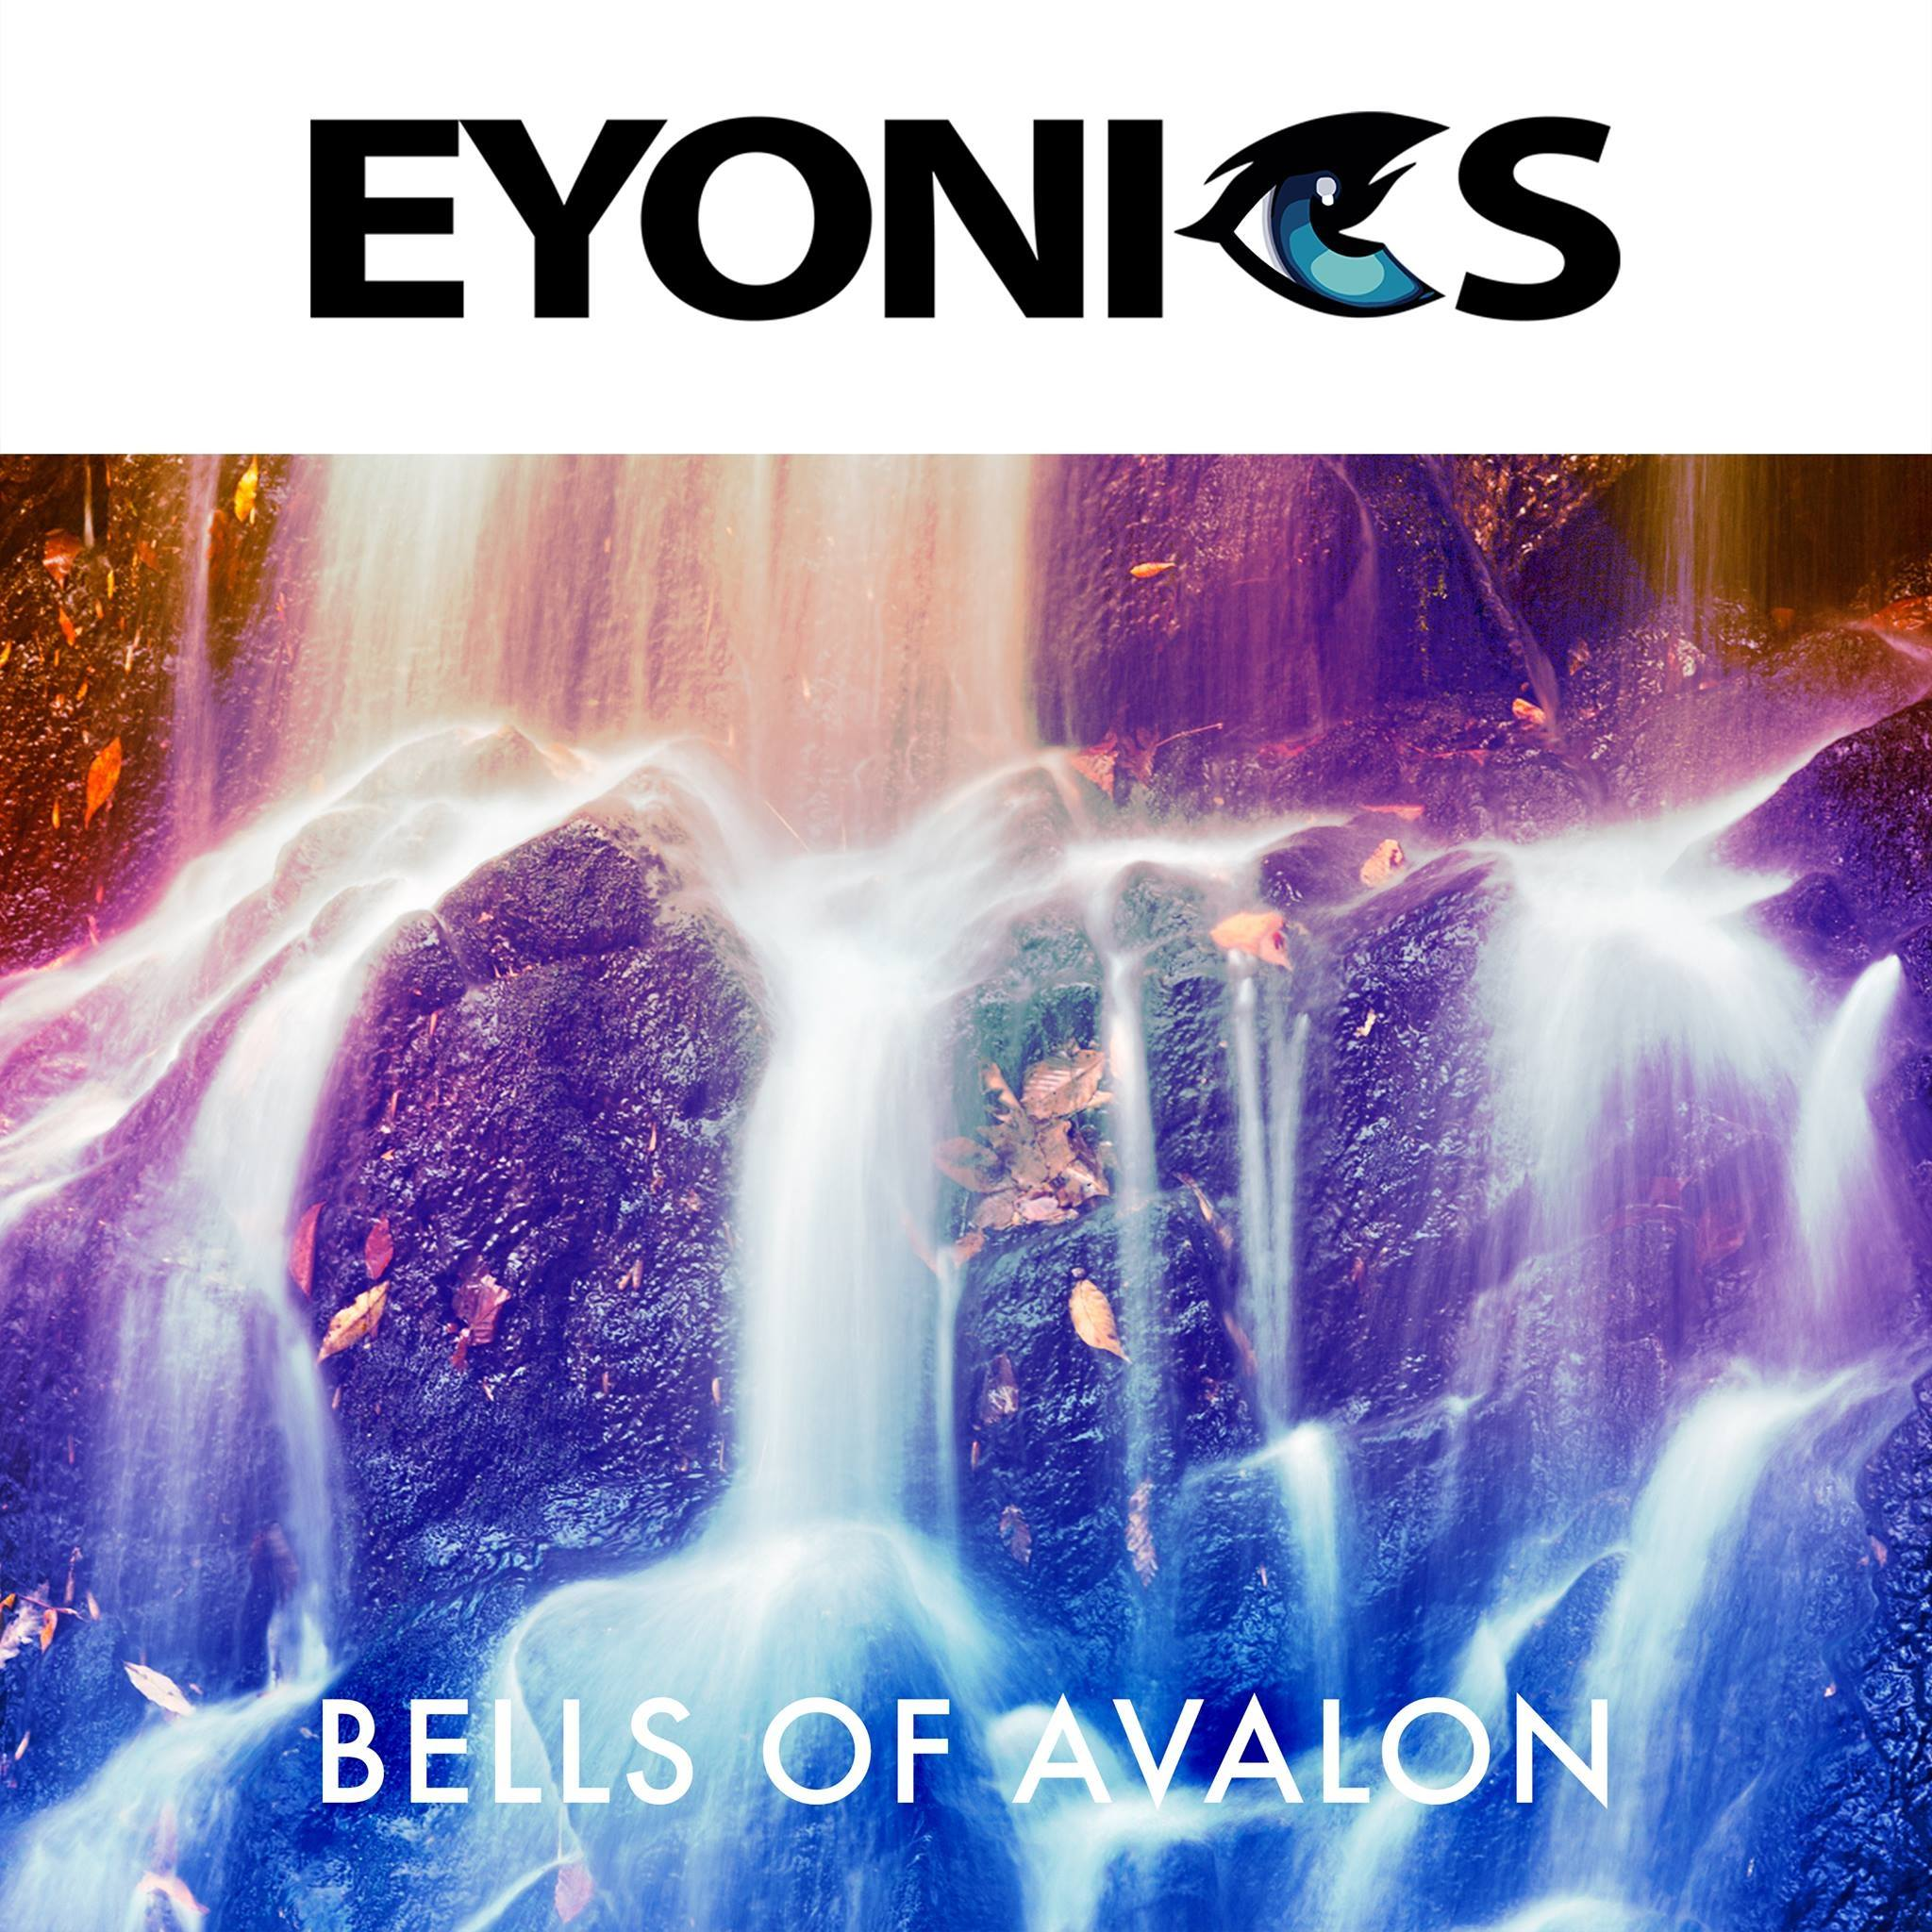 Eyonics - Bells Of Avalon